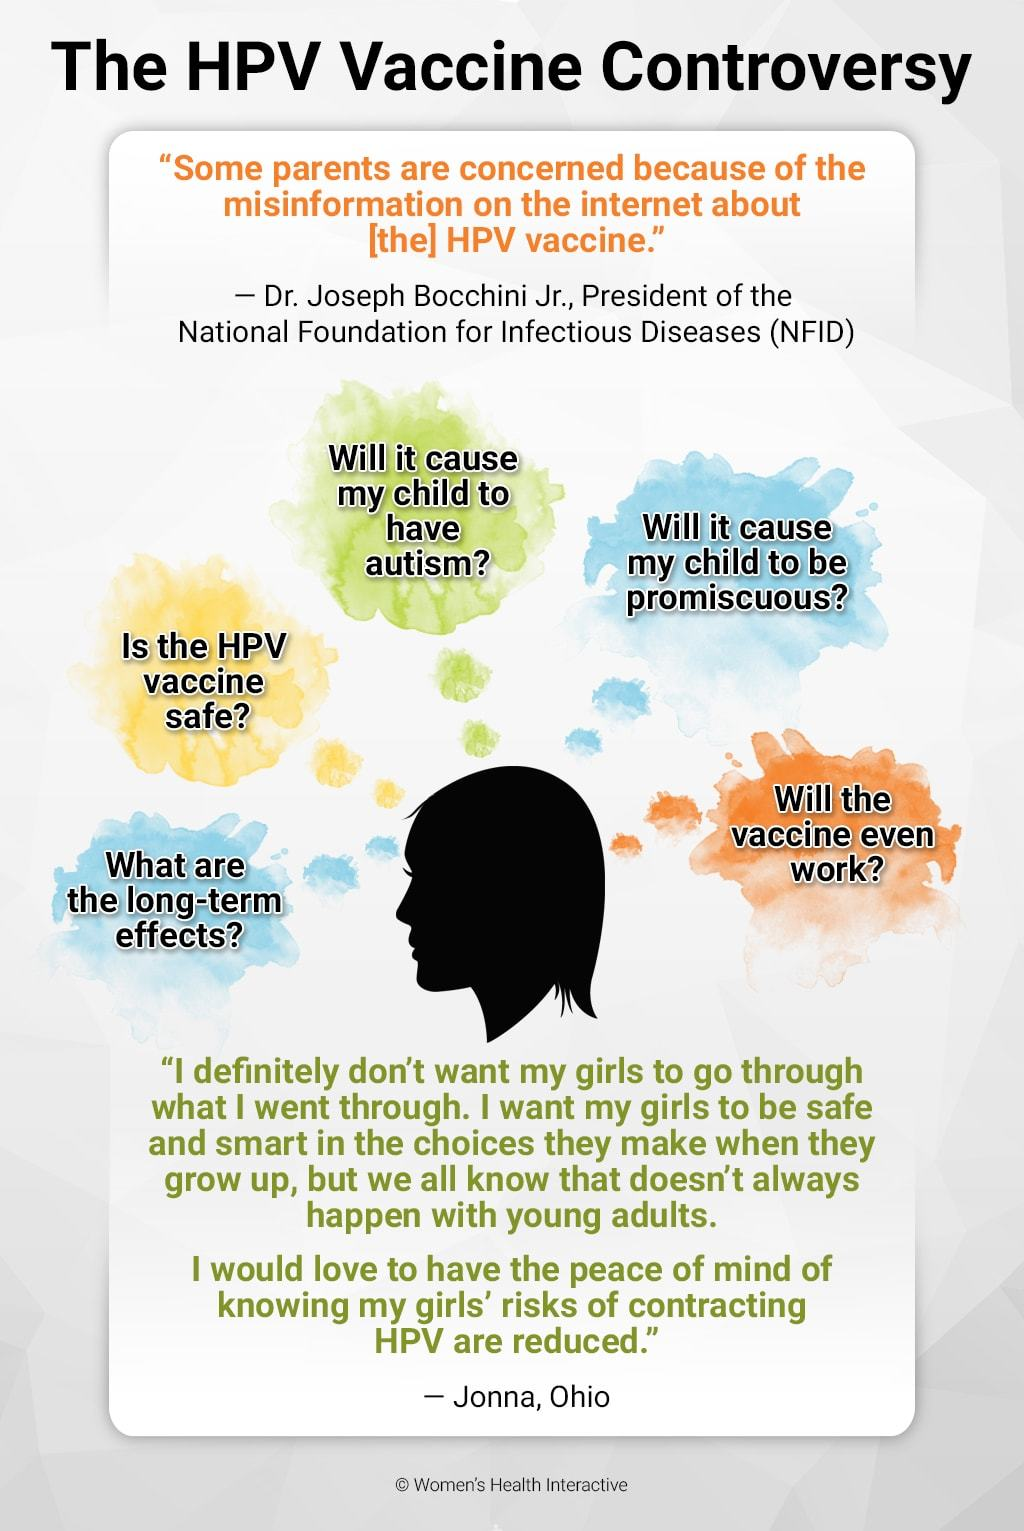 Infographic That Talks About The HPV Vaccine Controversy With Quotes and Concerns